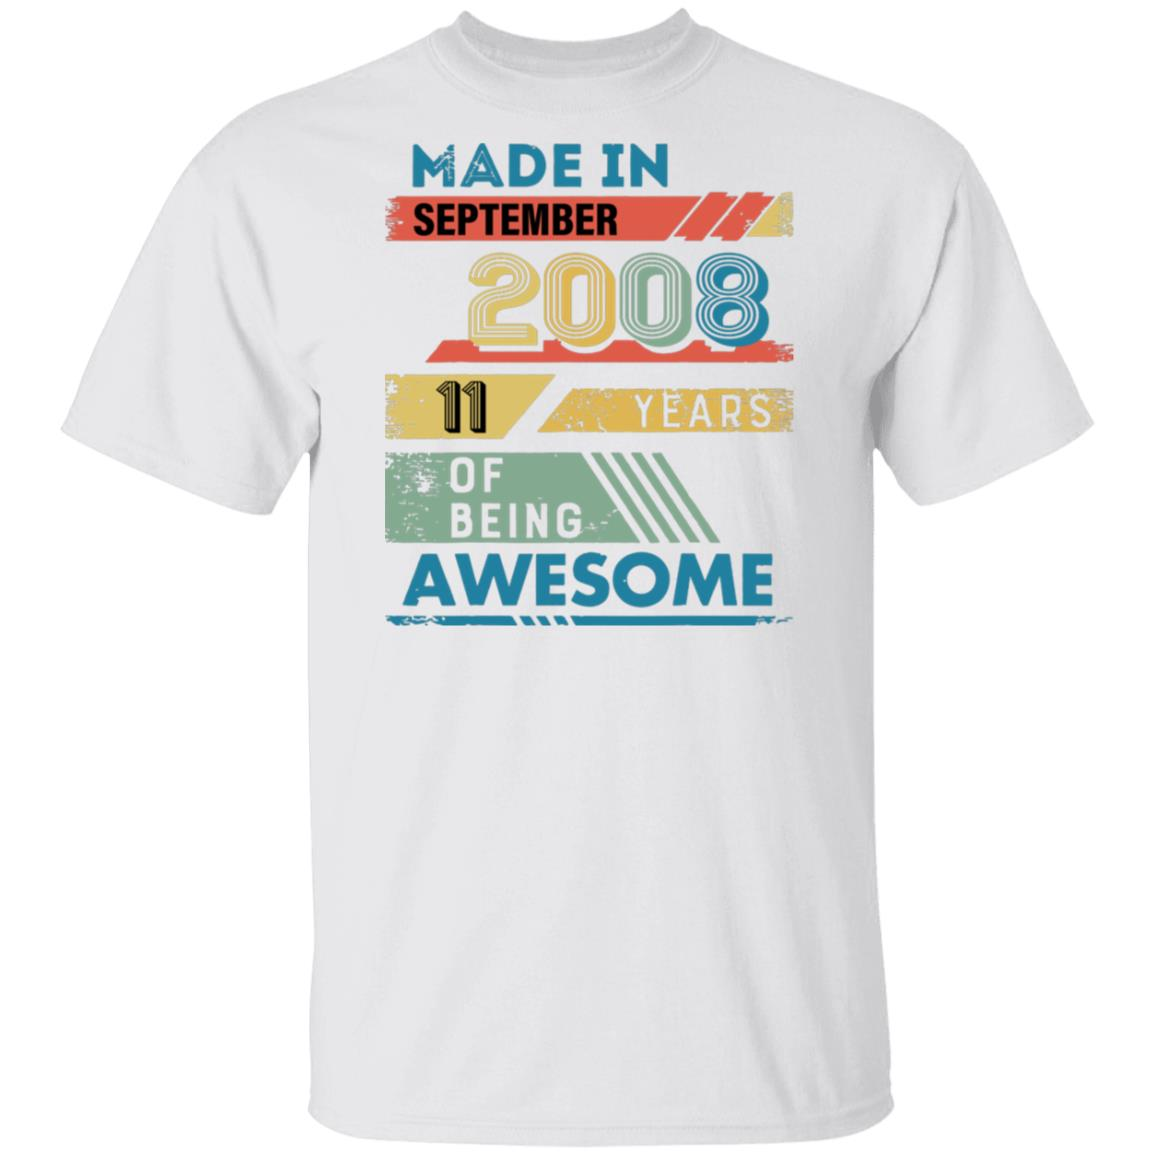 Made in September 2008 Tshirt